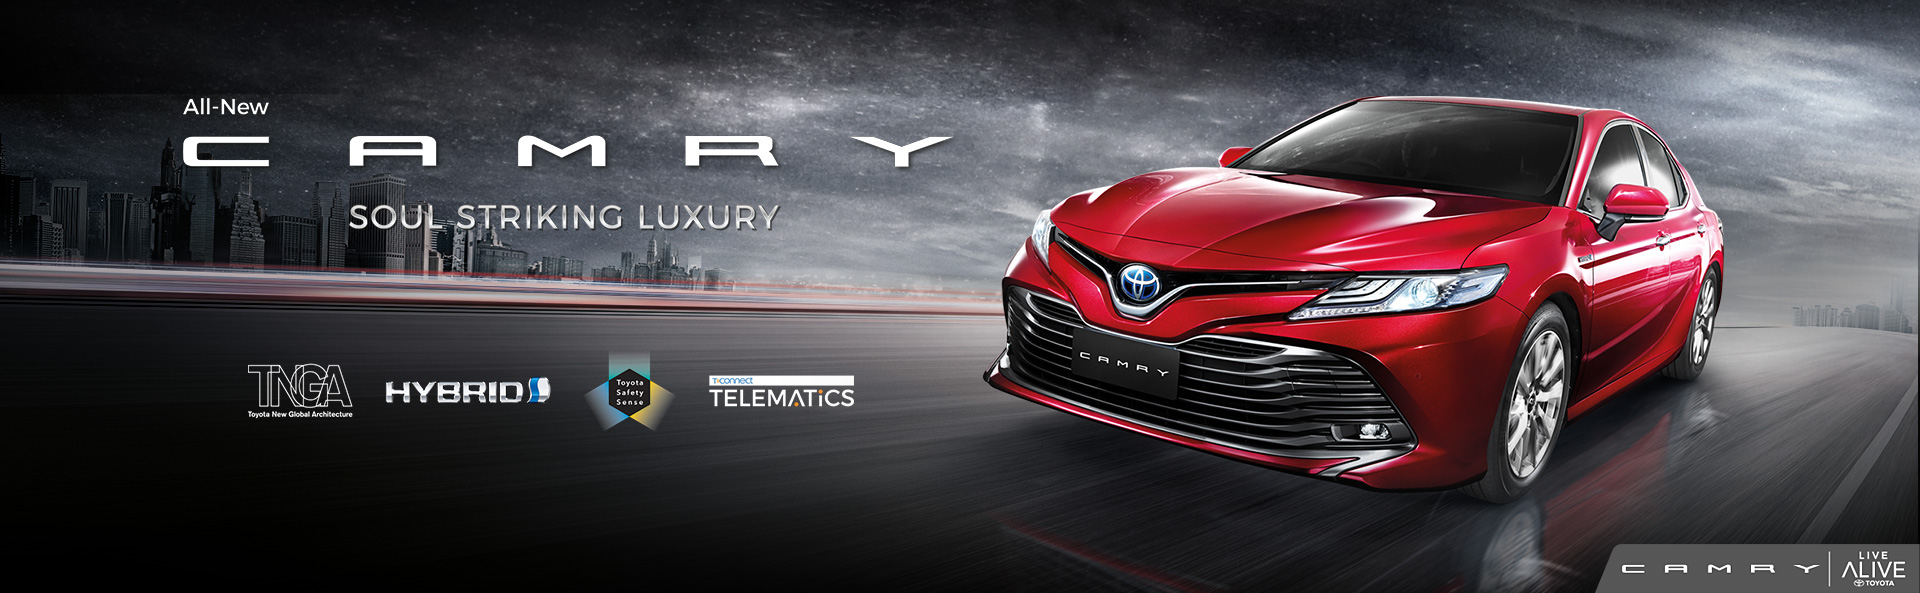 Harga Toyota All new Camry Indonesia